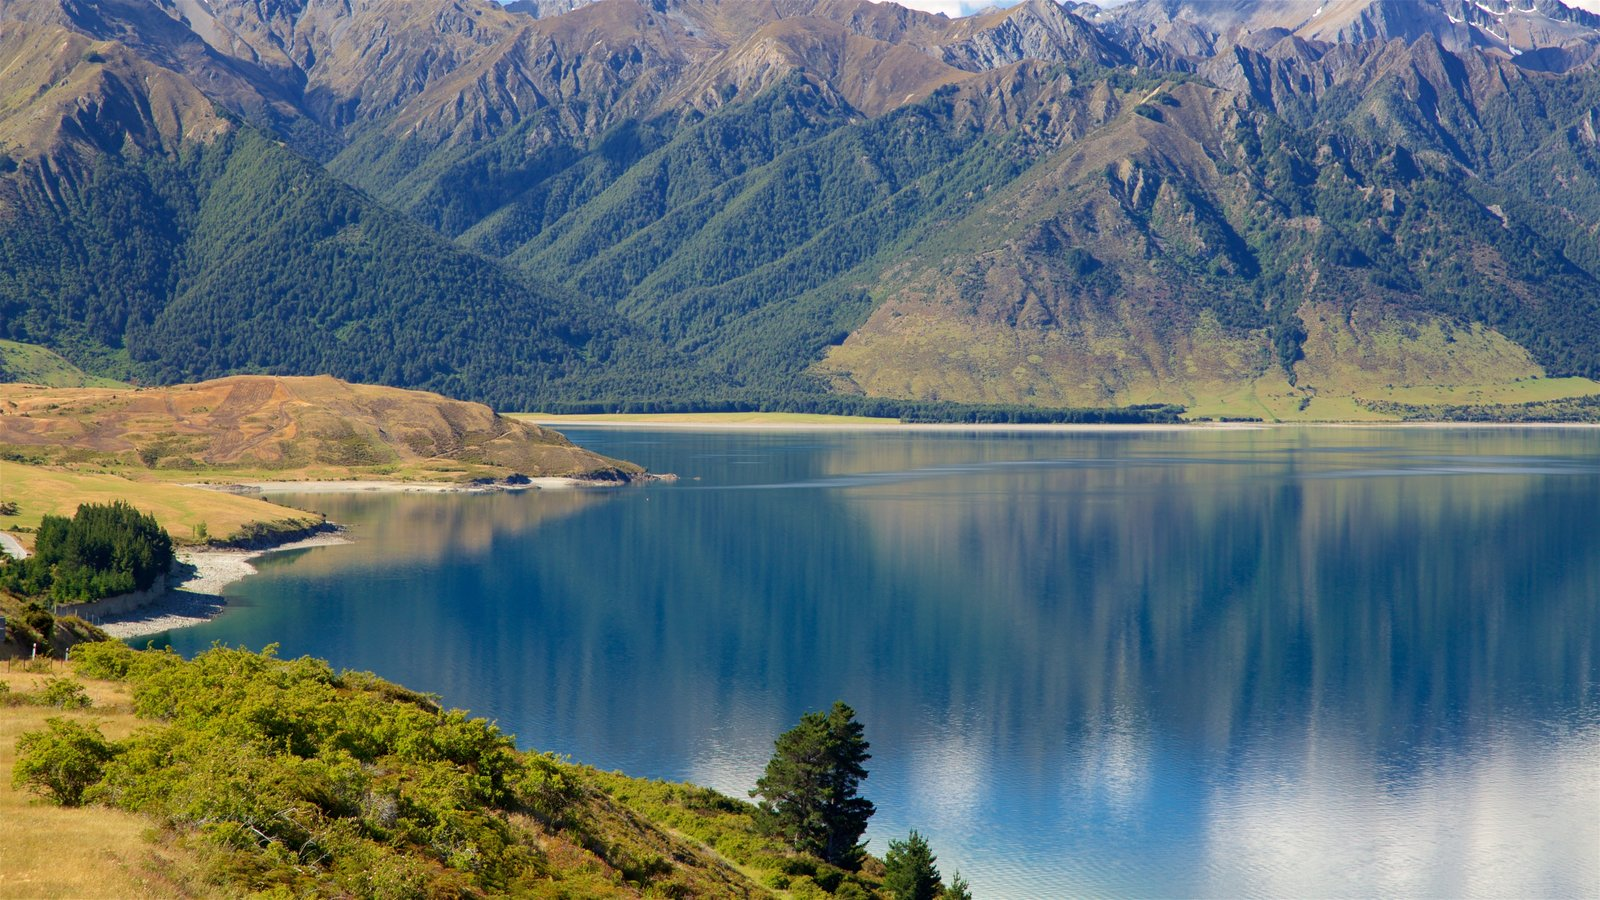 Lake Hawea showing forests, mountains and a lake or waterhole